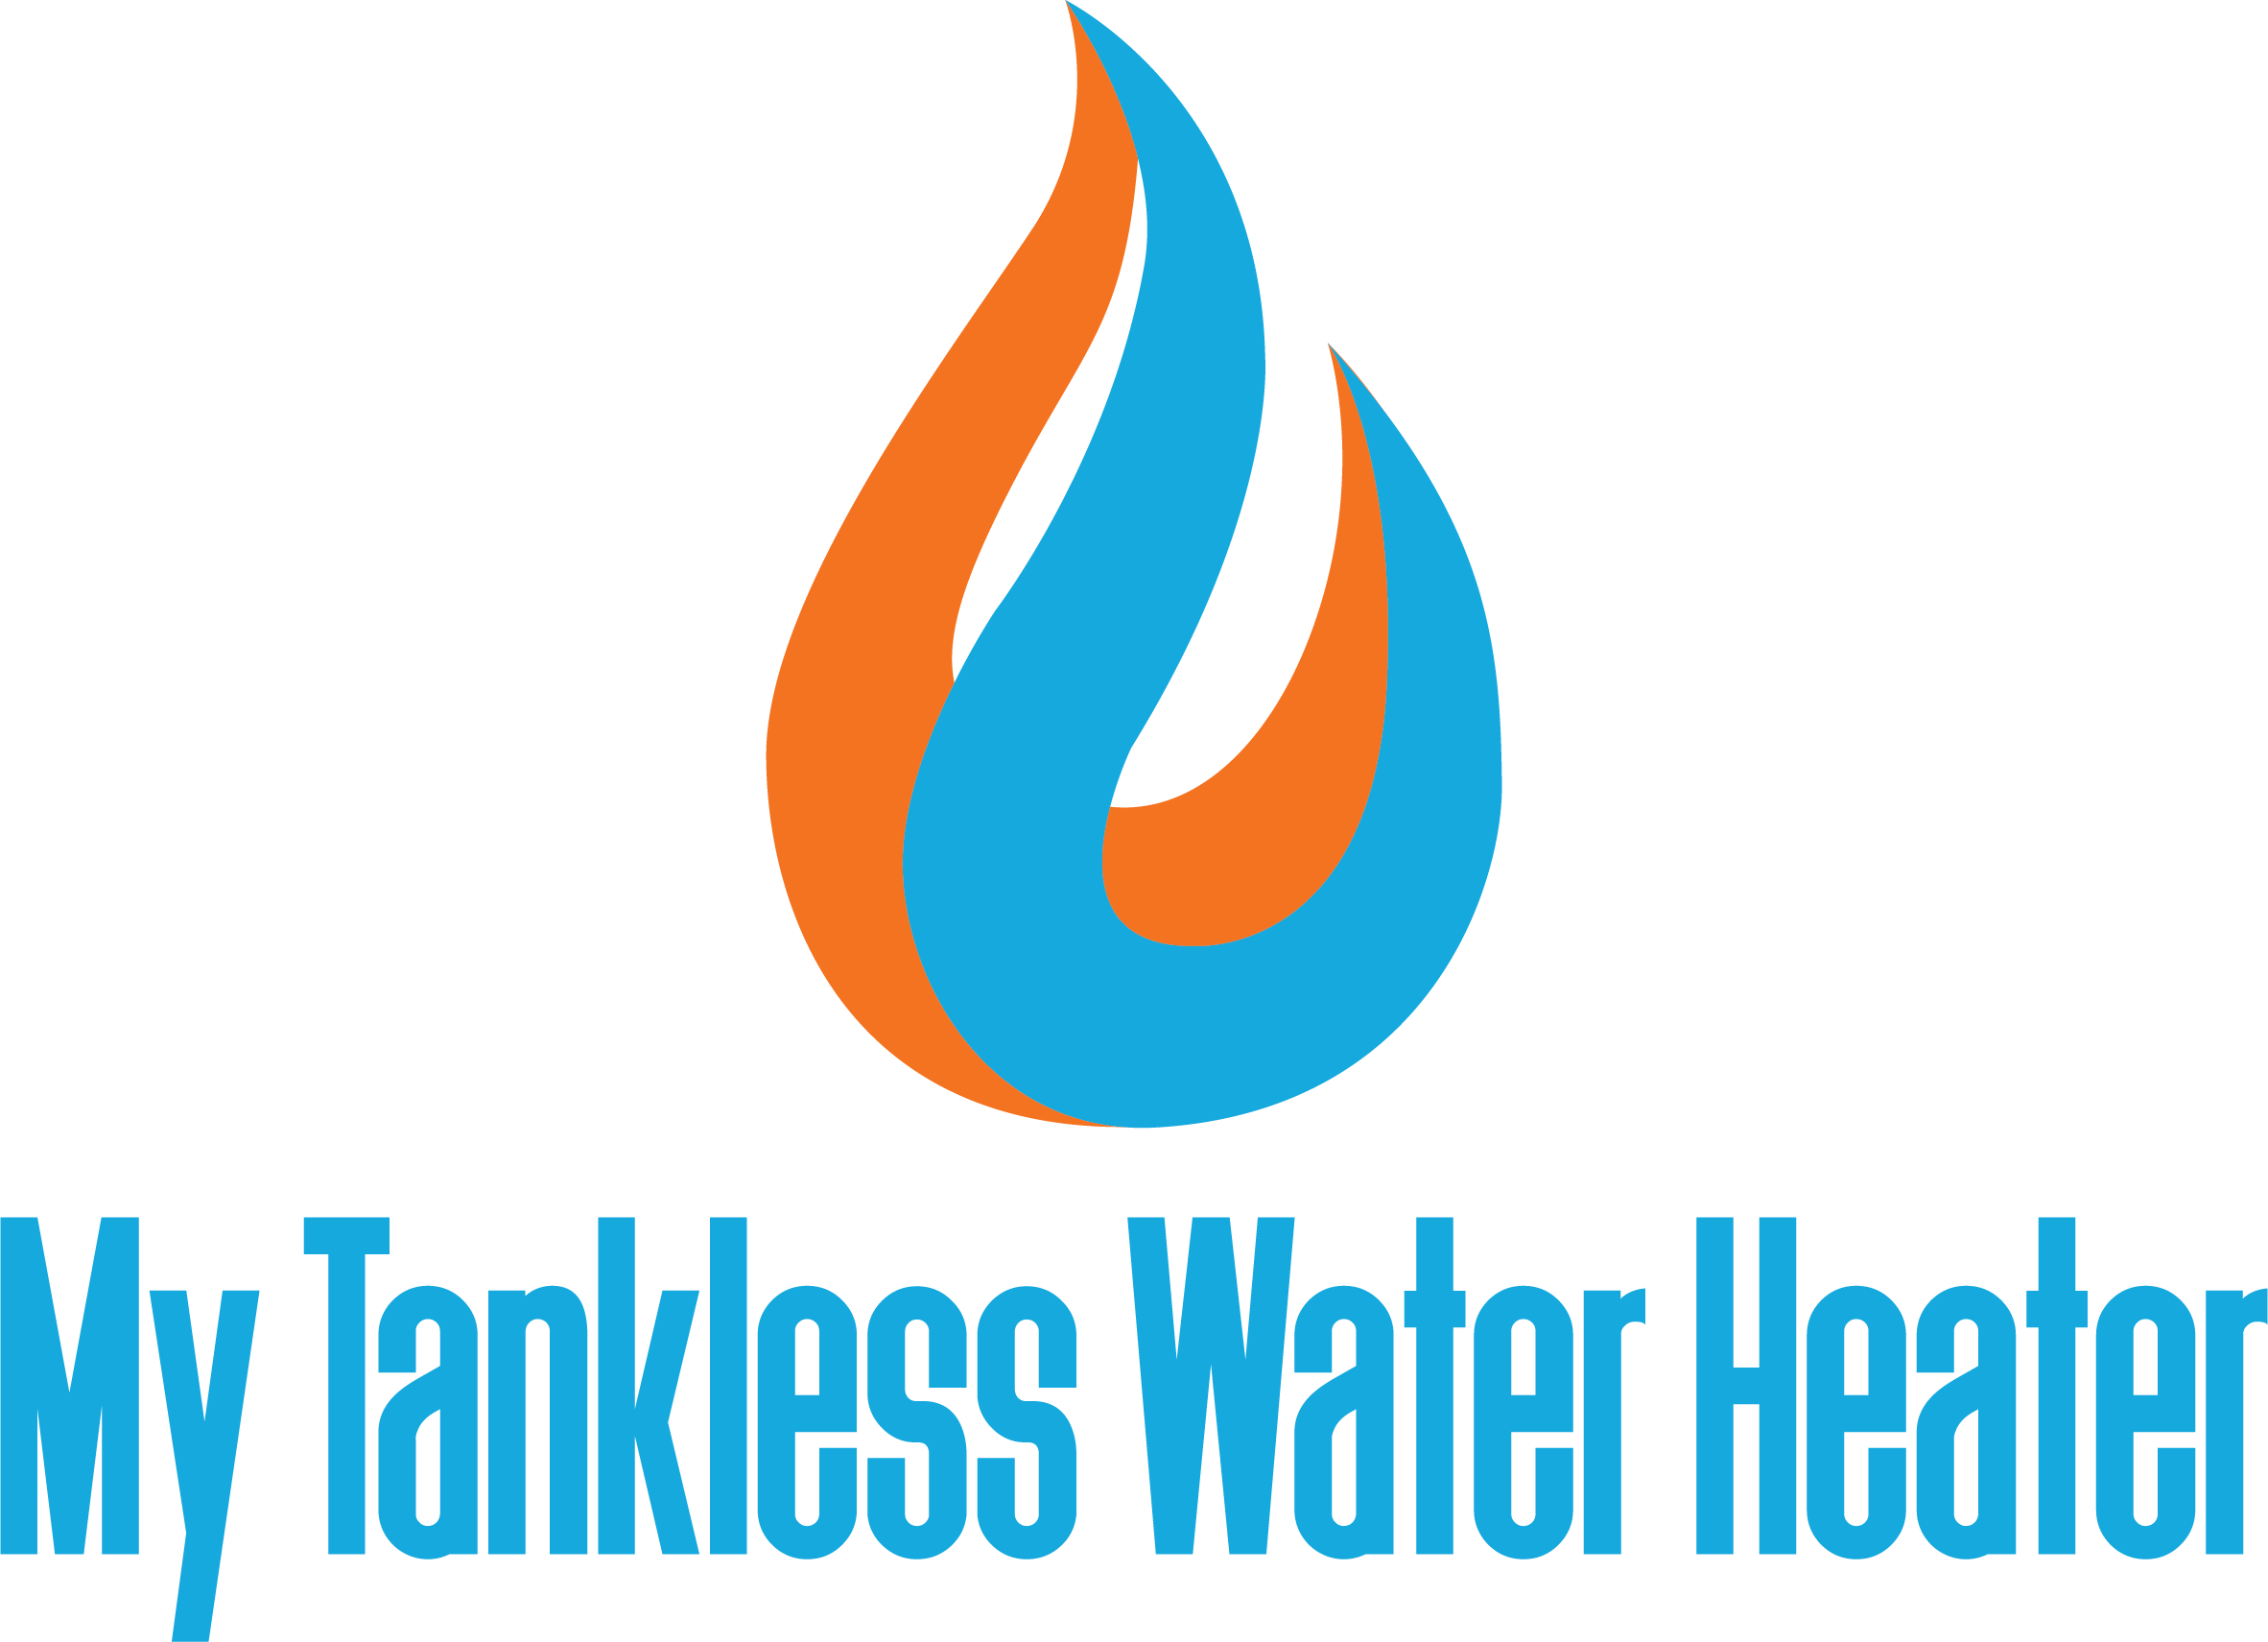 My Tankless Water Heater